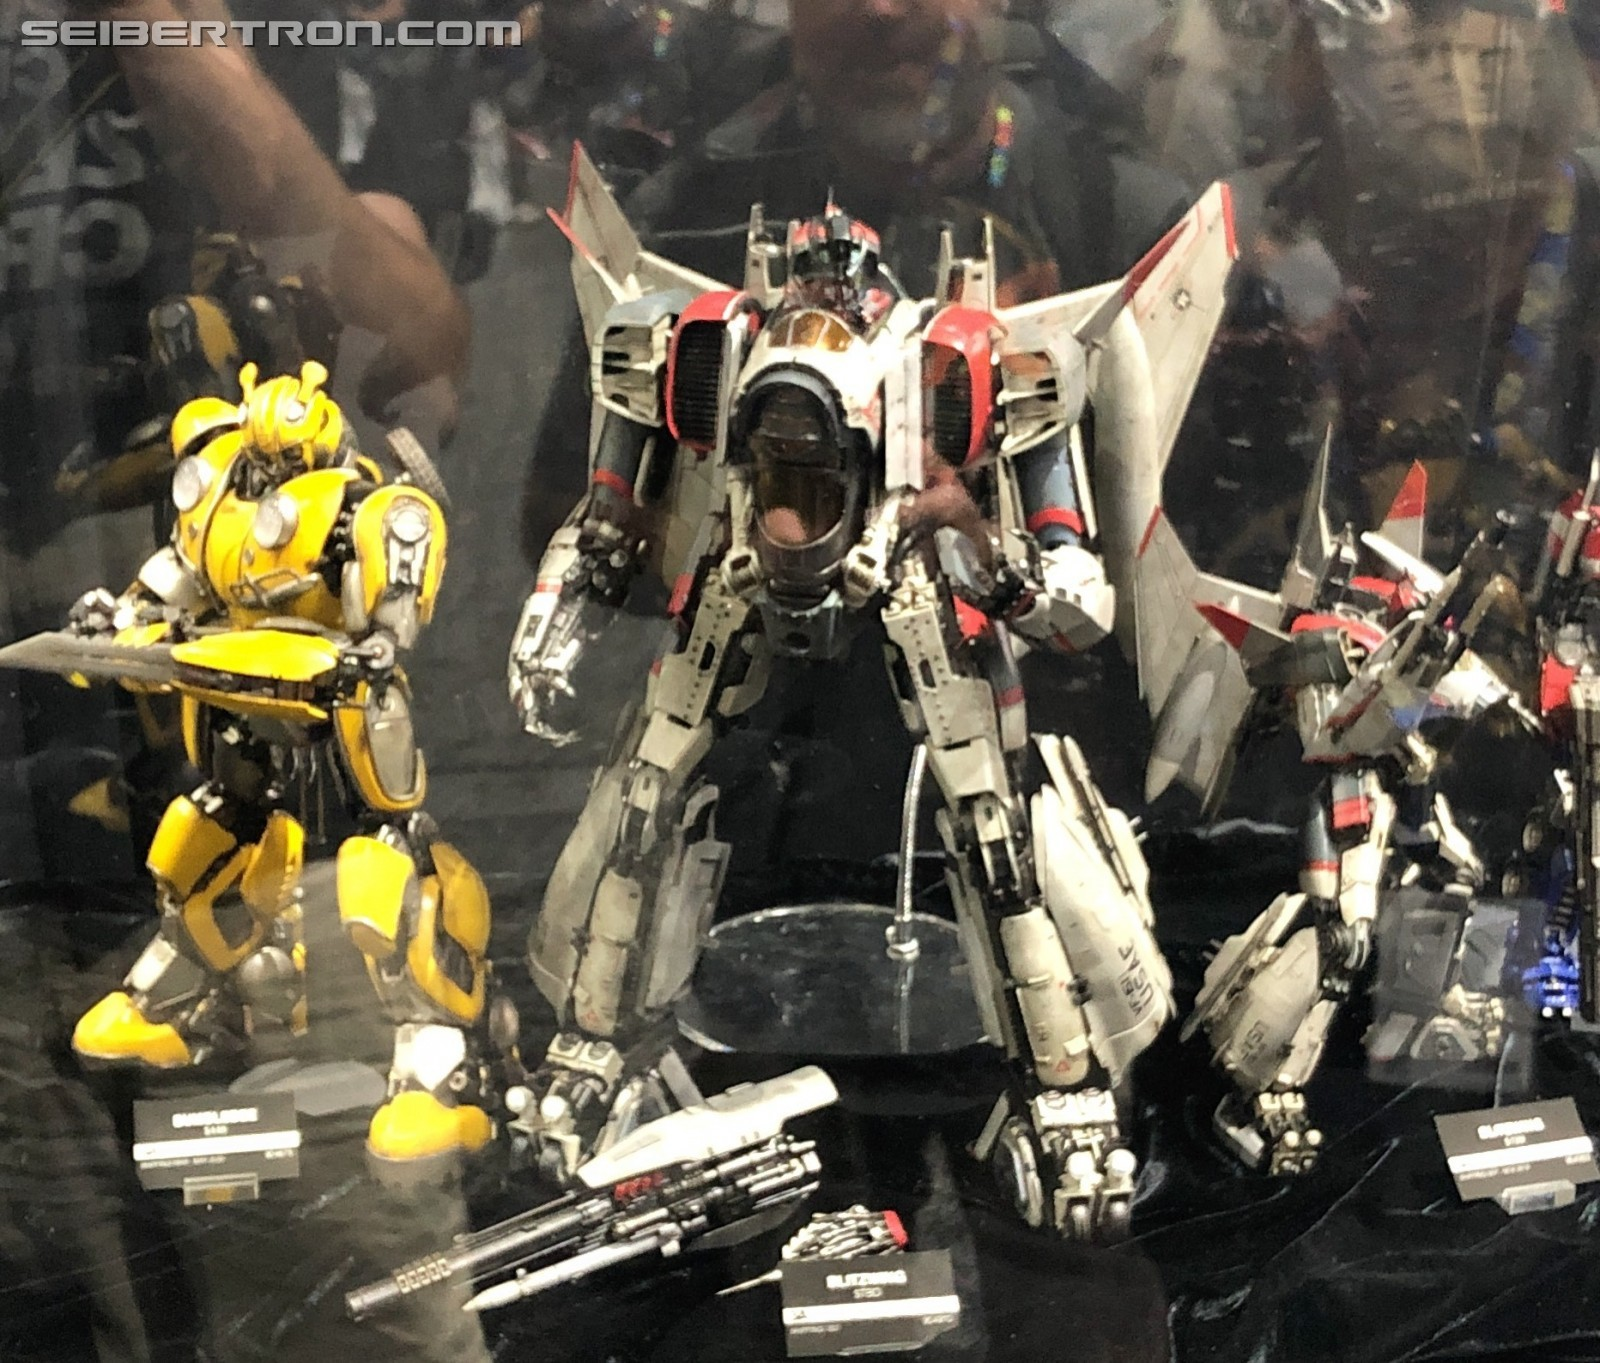 Transformers News: 3A Bumblebee Blitzwing Mondo Mecha Figures Batman and Captain America and More at #SDCC2019